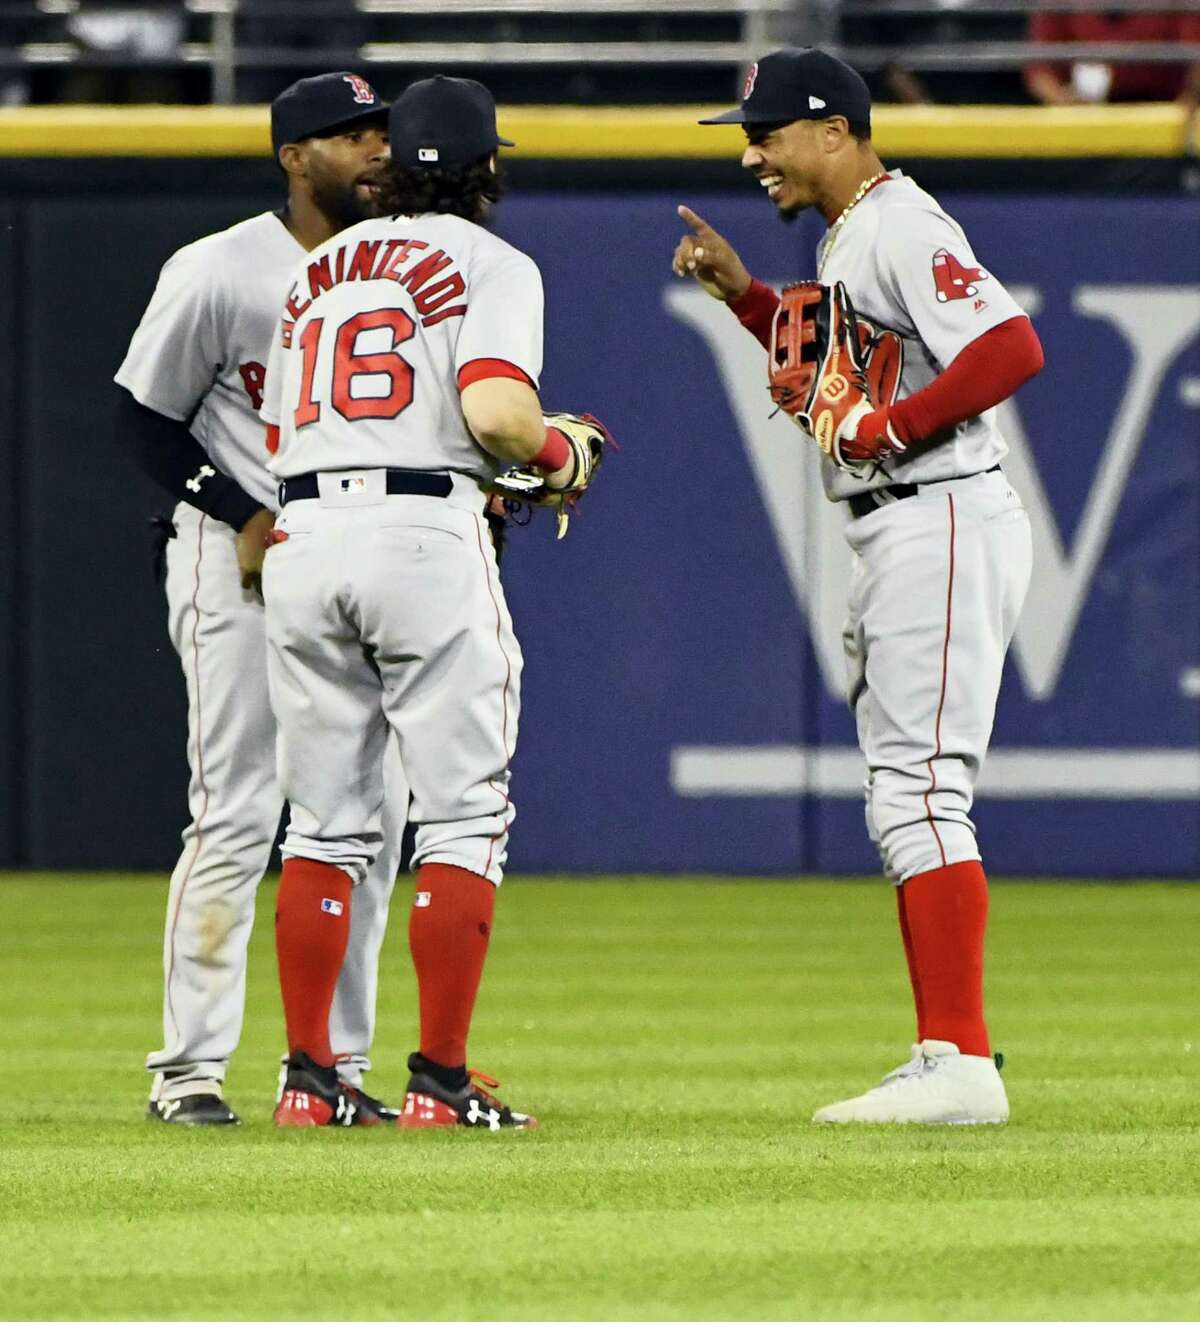 Boston Red Sox center fielder Jackie Bradley Jr., left, left fielder Andrew Benintendi (16) and right fielder Mookie Betts after celebrate after the Red Sox defeated the Chicago White Sox 4-1 in Chicago on Wednesday.